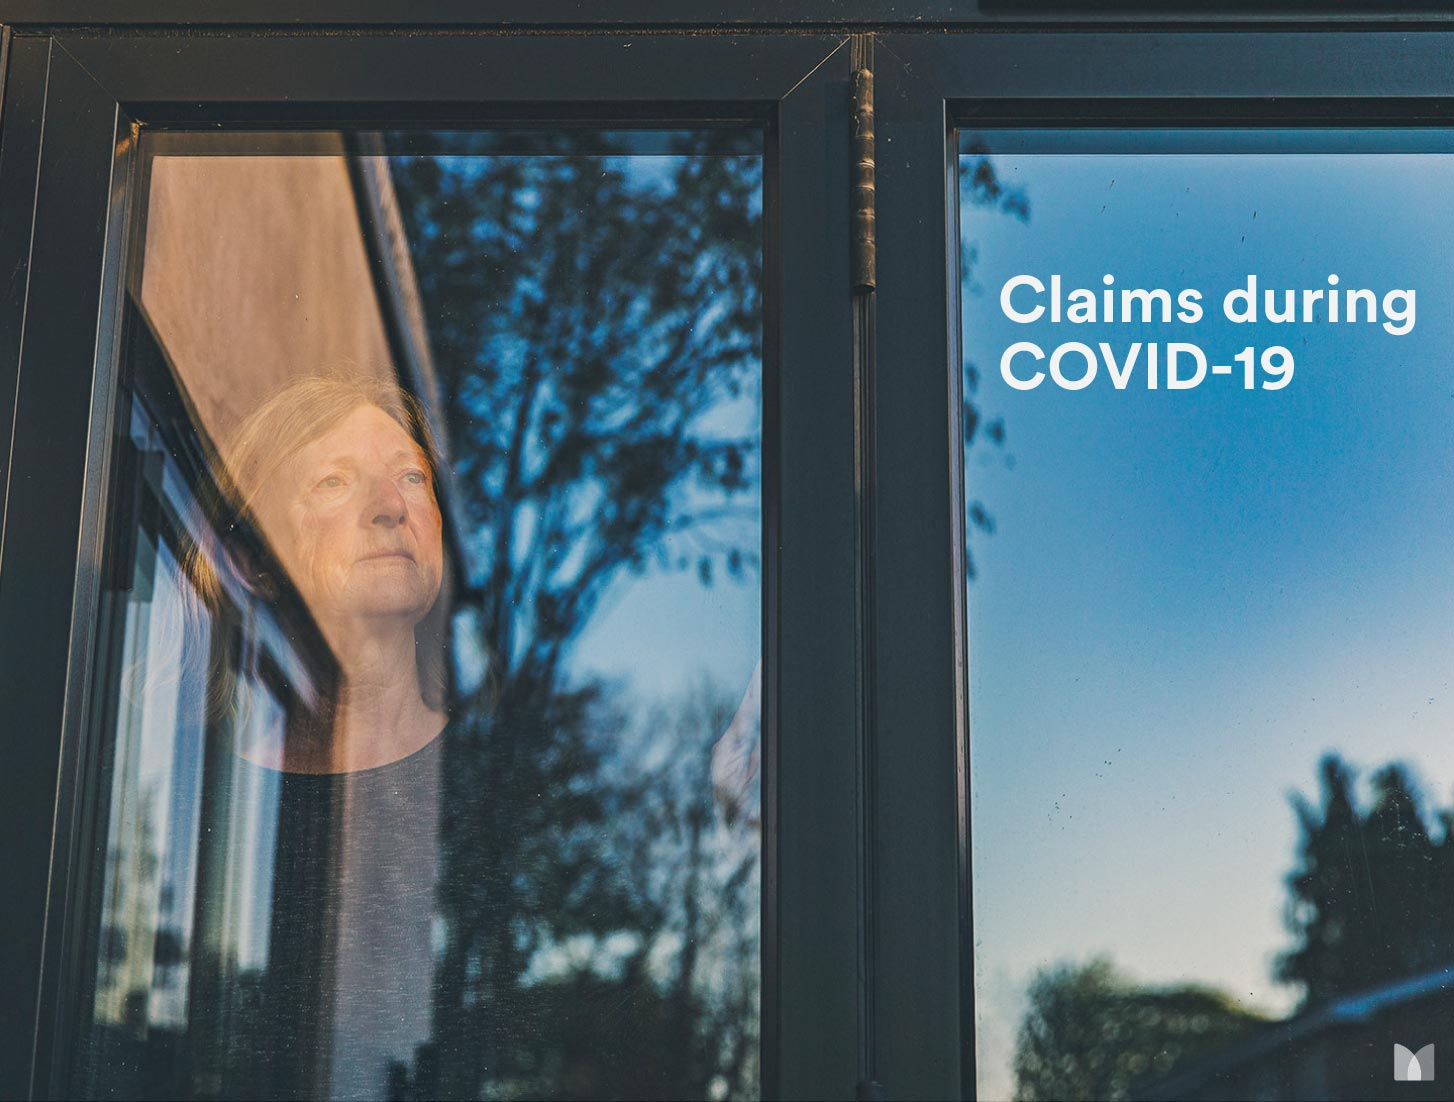 Claims during COVID-19: the human experience is even more important now